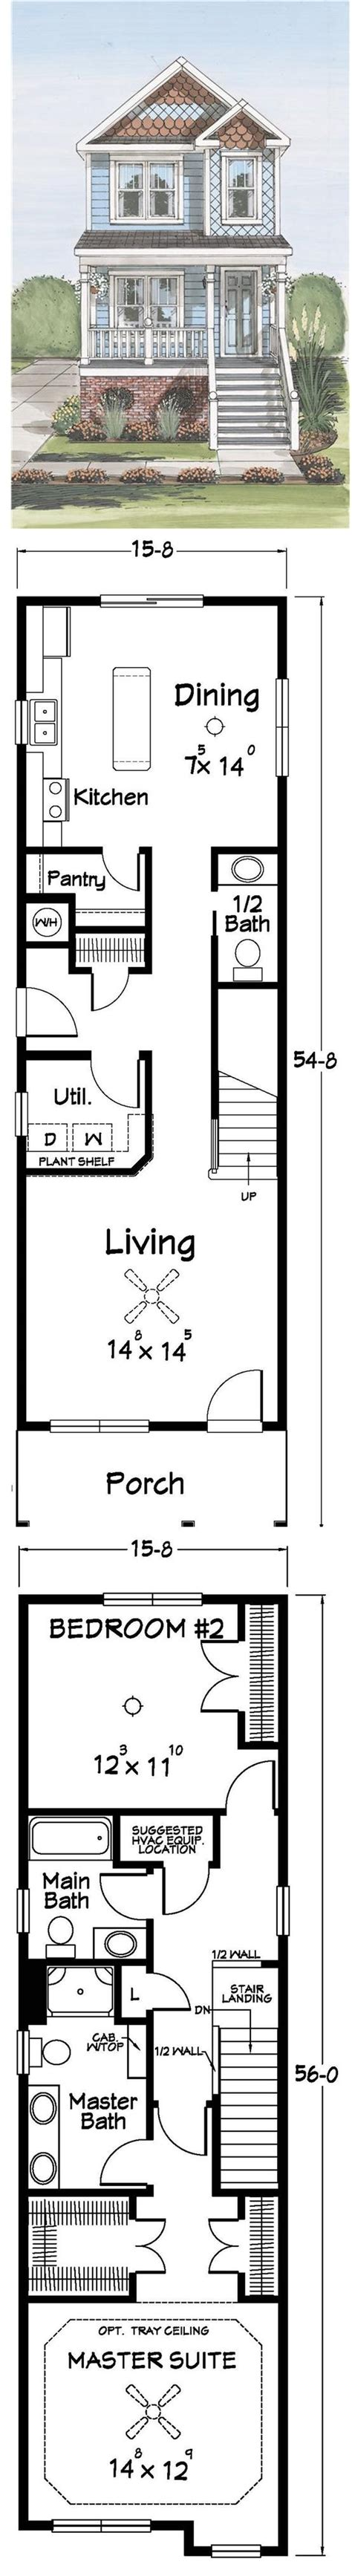 Small Two Story House Plans Narrow Lot by Best 25 Narrow Lot House Plans Ideas On